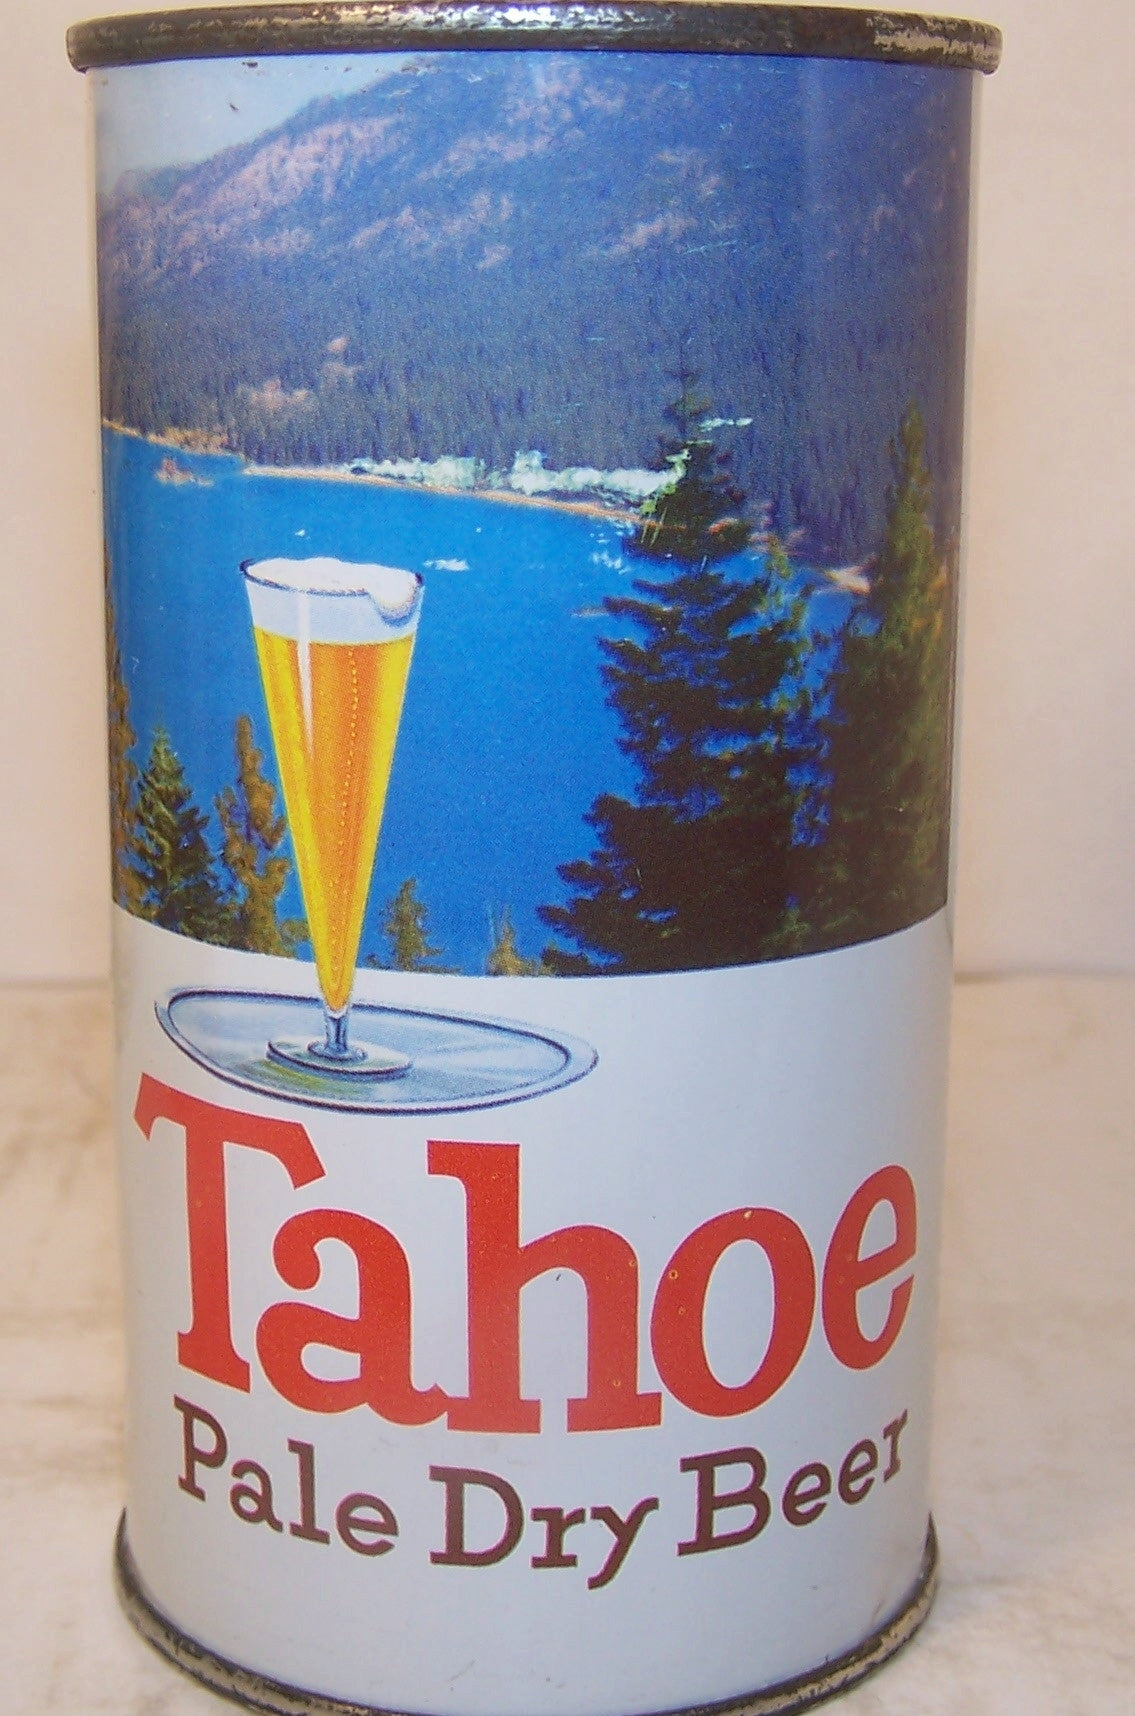 Tahoe Pale Dry Beer (Pacific) USBC 138-9, Grade 1/1+ Sold 9/4/15